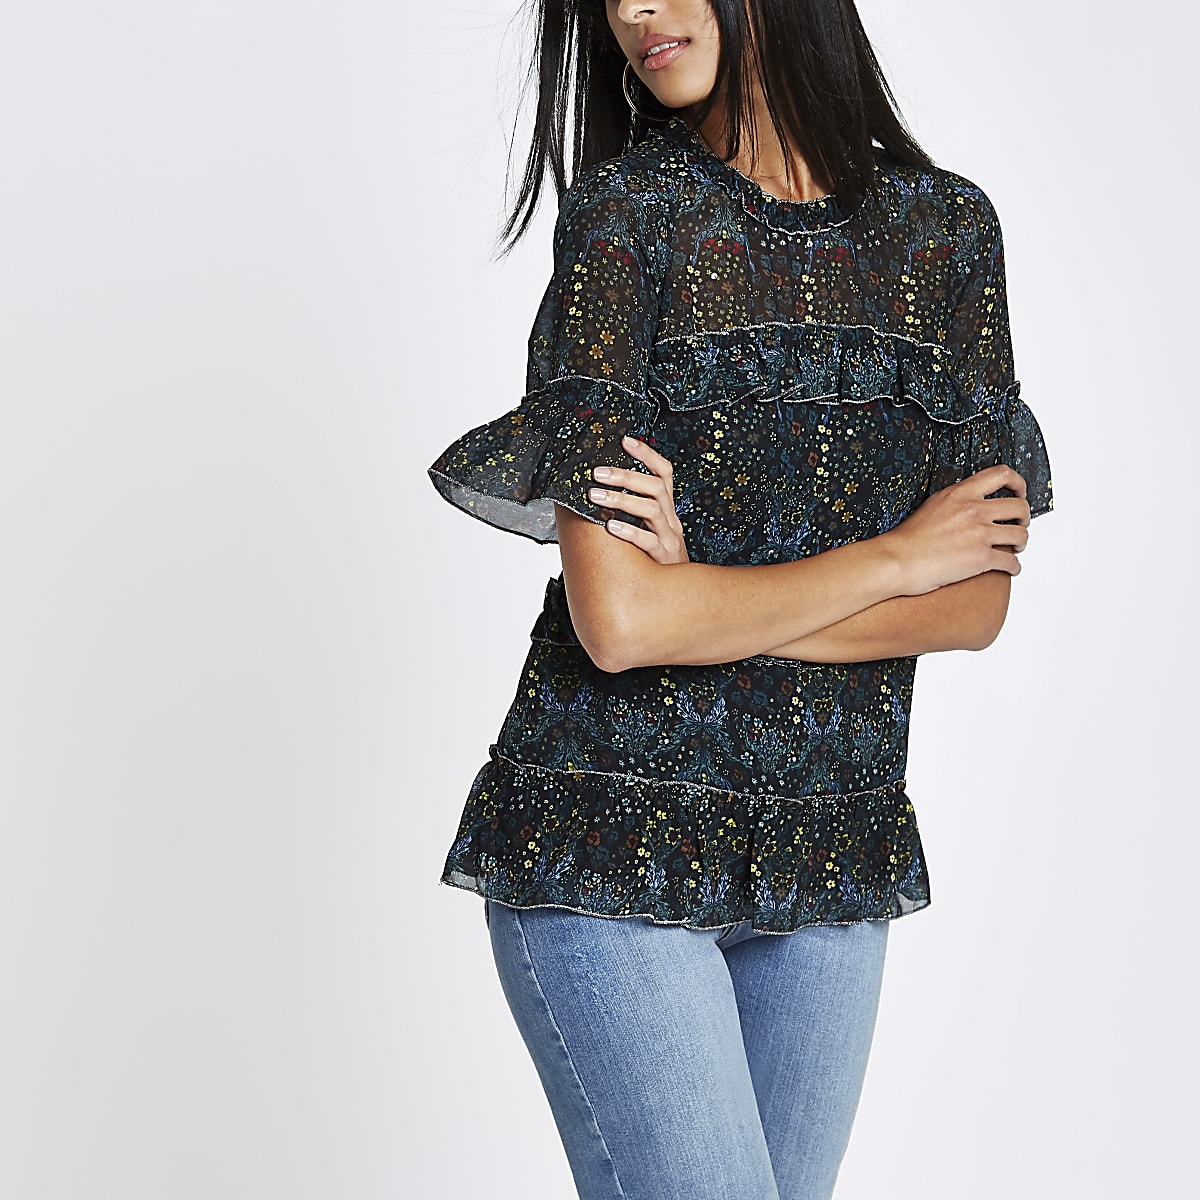 Black floral frill top